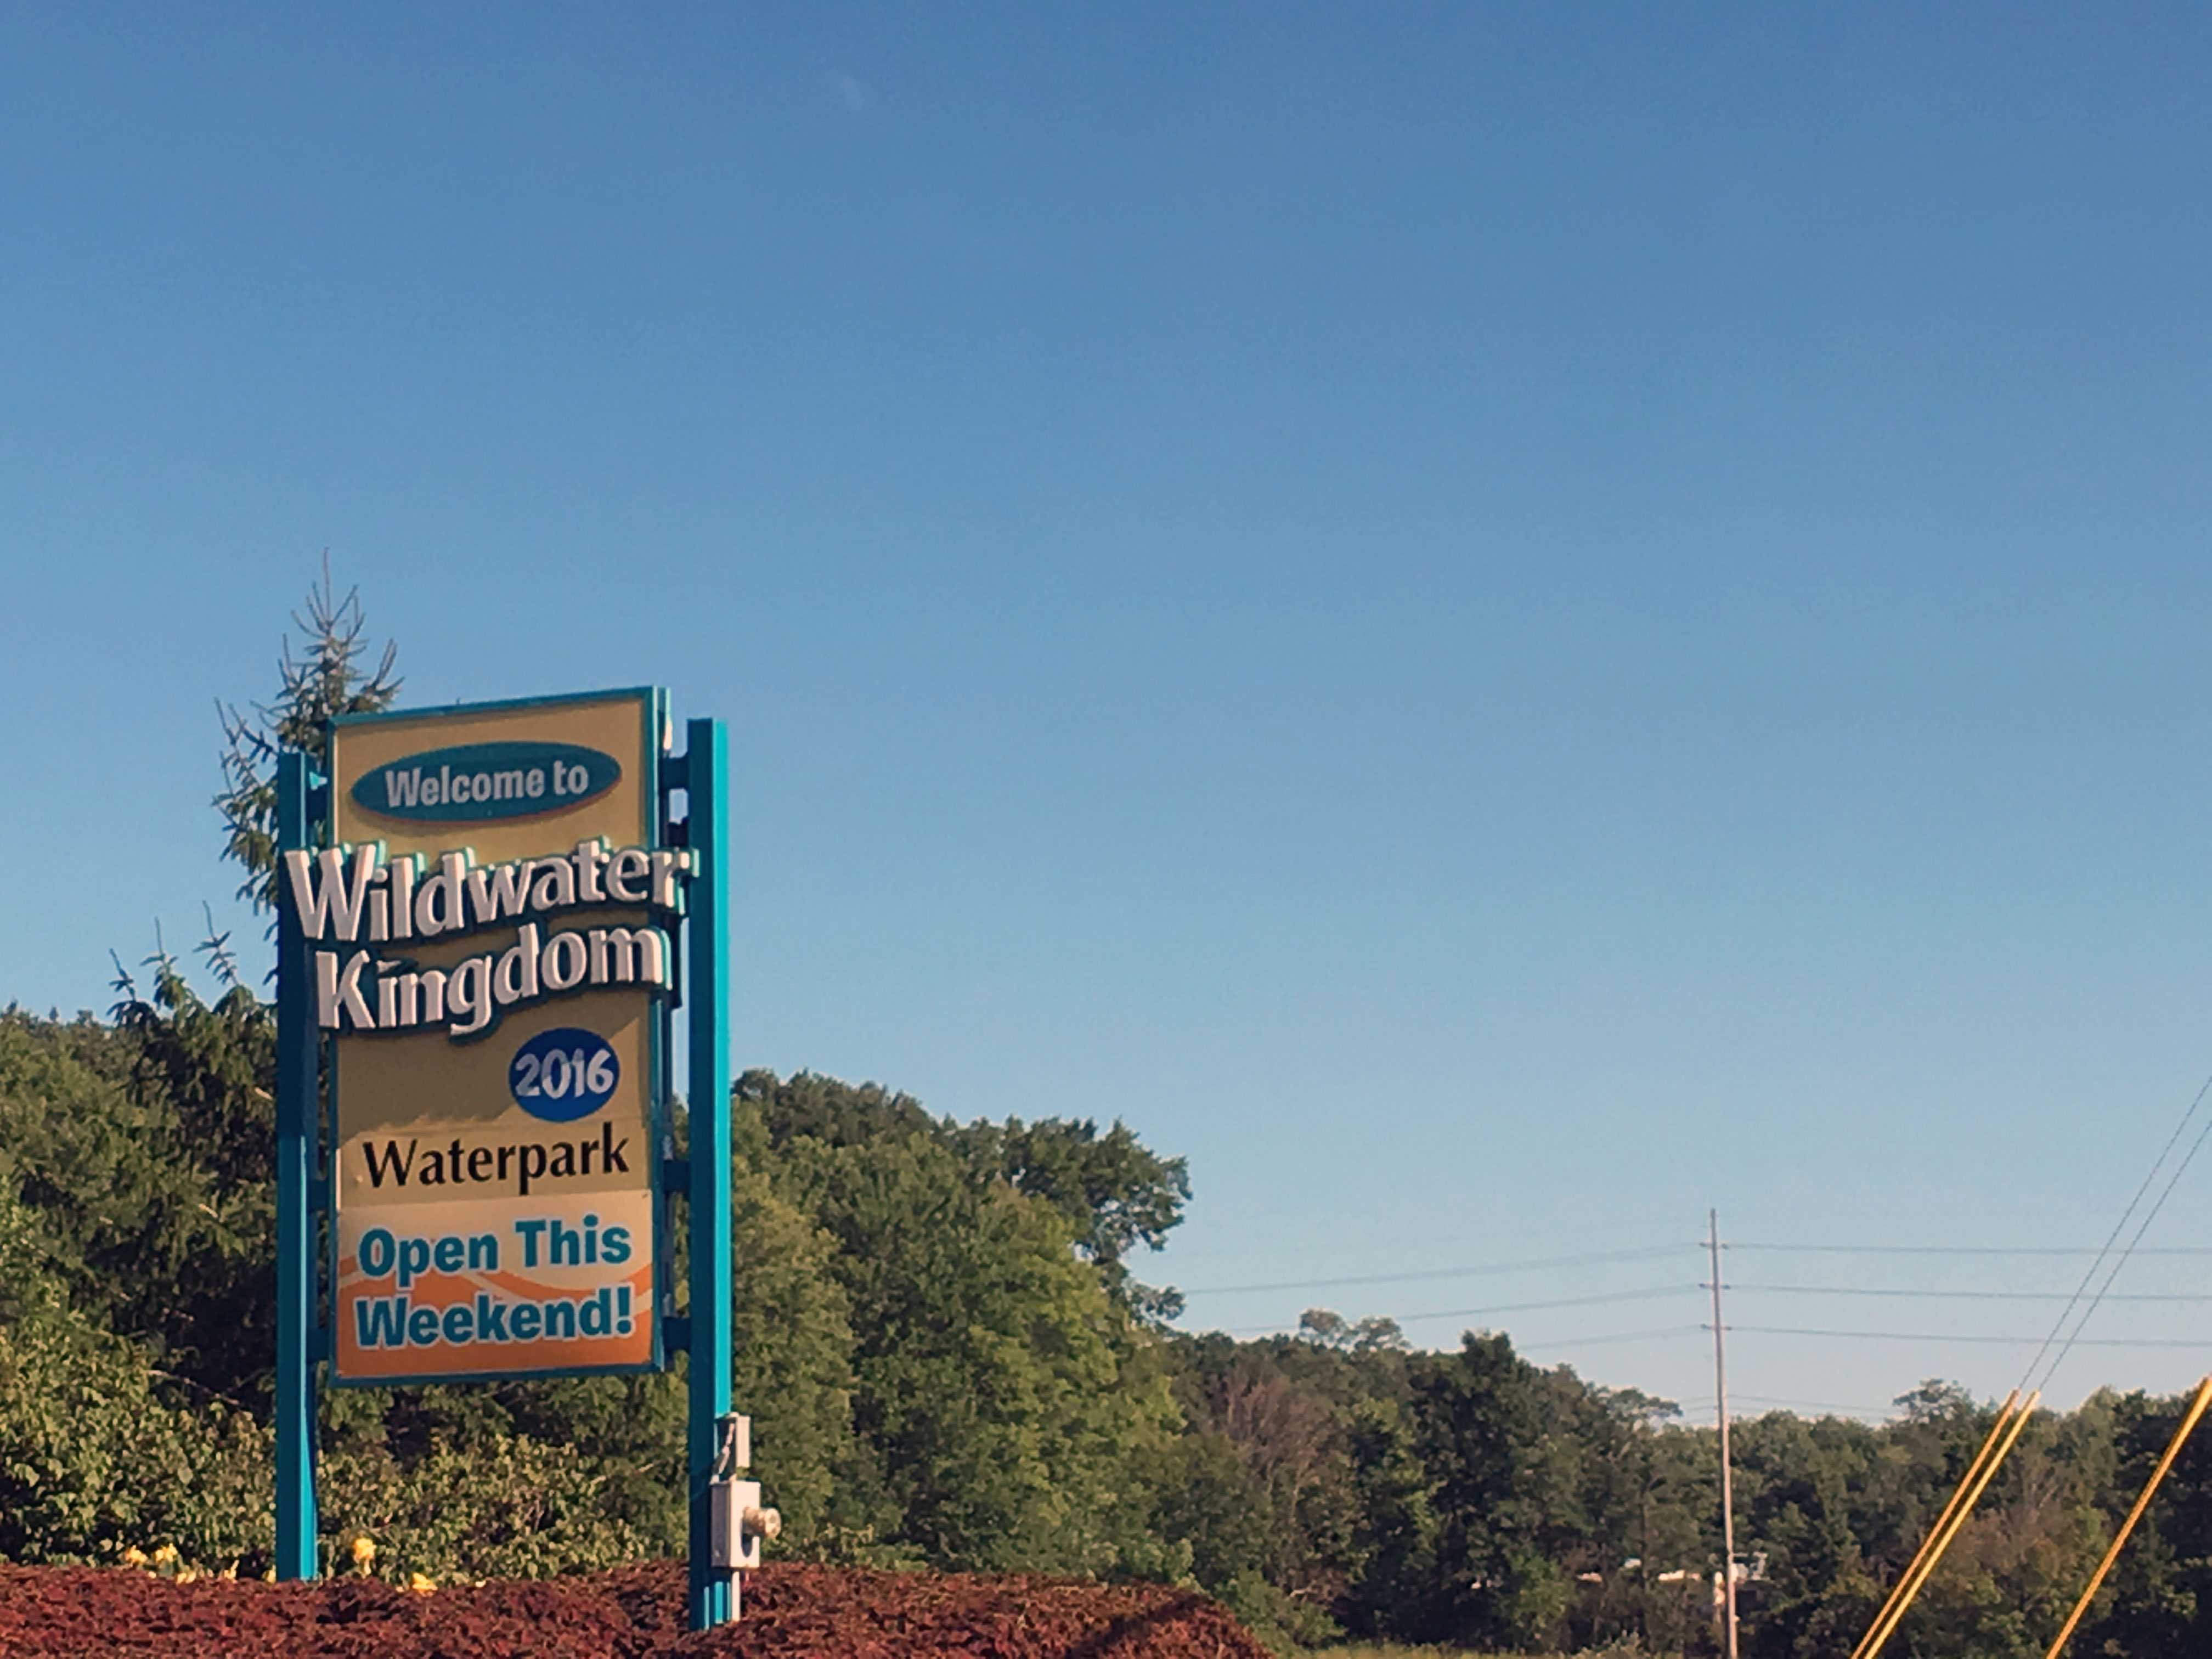 Wildwater Kingdom, located in Aurora, has been open since 2005.